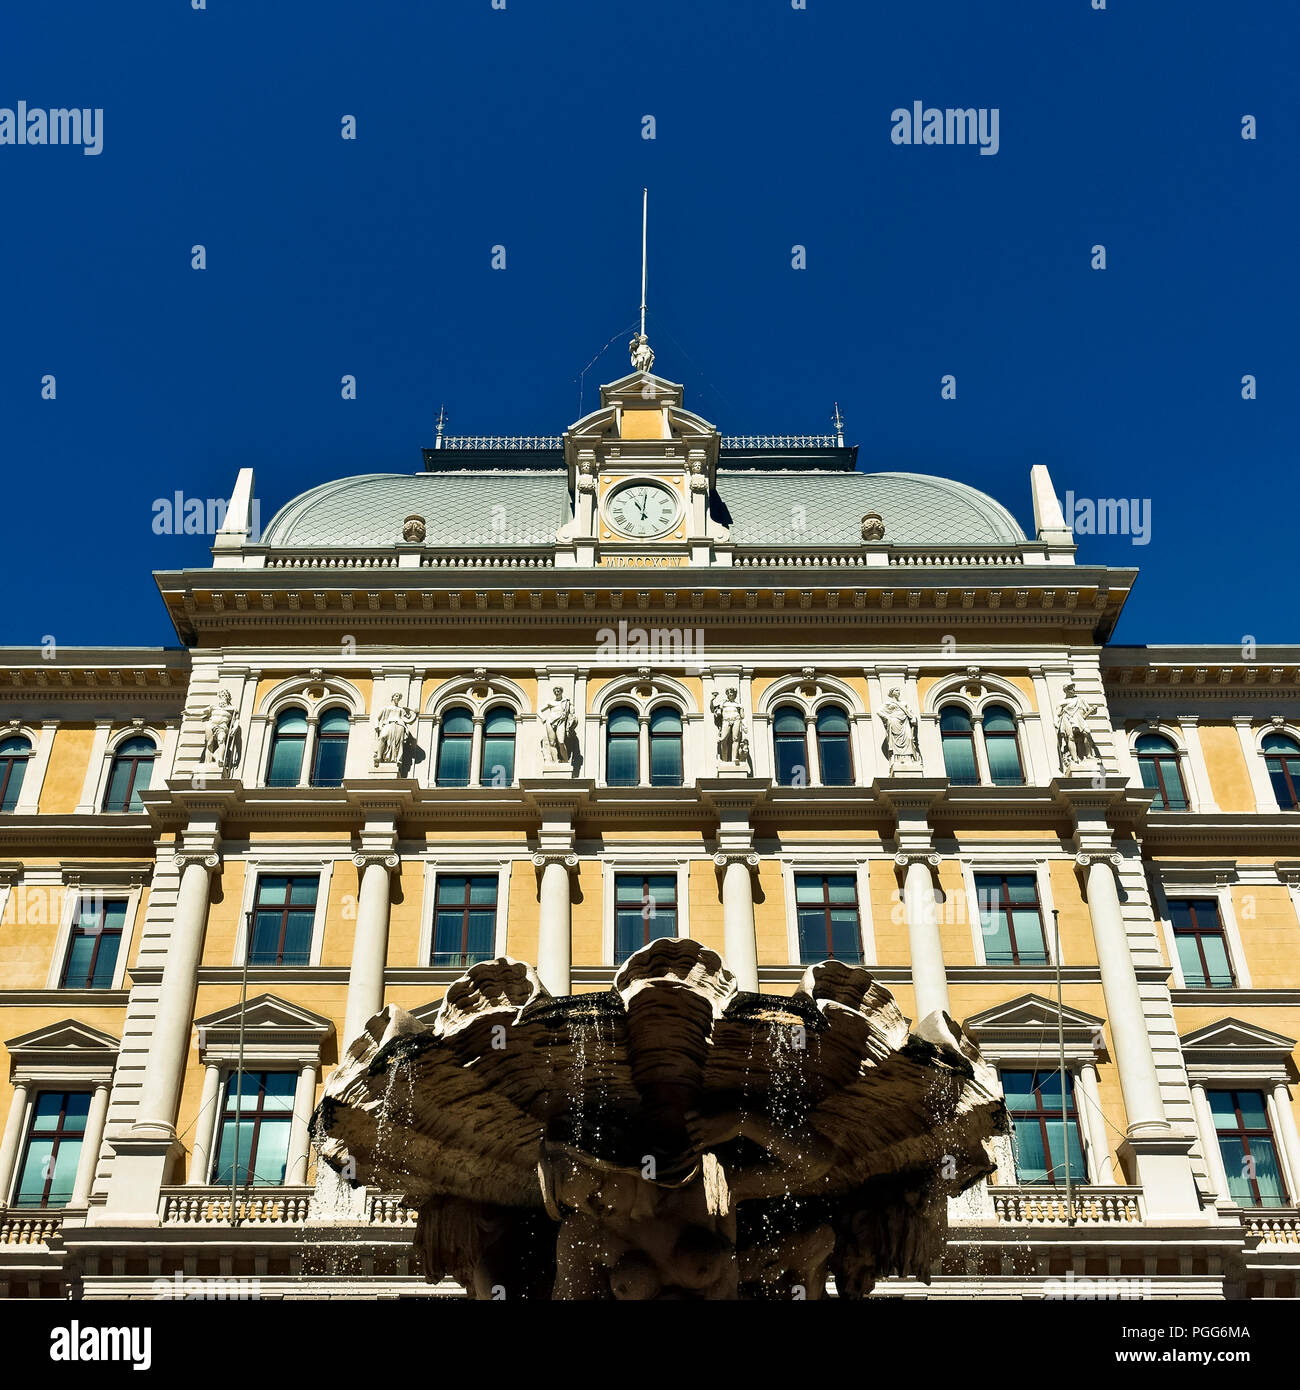 Central Post Office and Middle European Postal and Telegraph Museum, Piazza Vittorio Veneto Square. Trieste, Italy, Europe. Clear blue sky, copy space Stock Photo